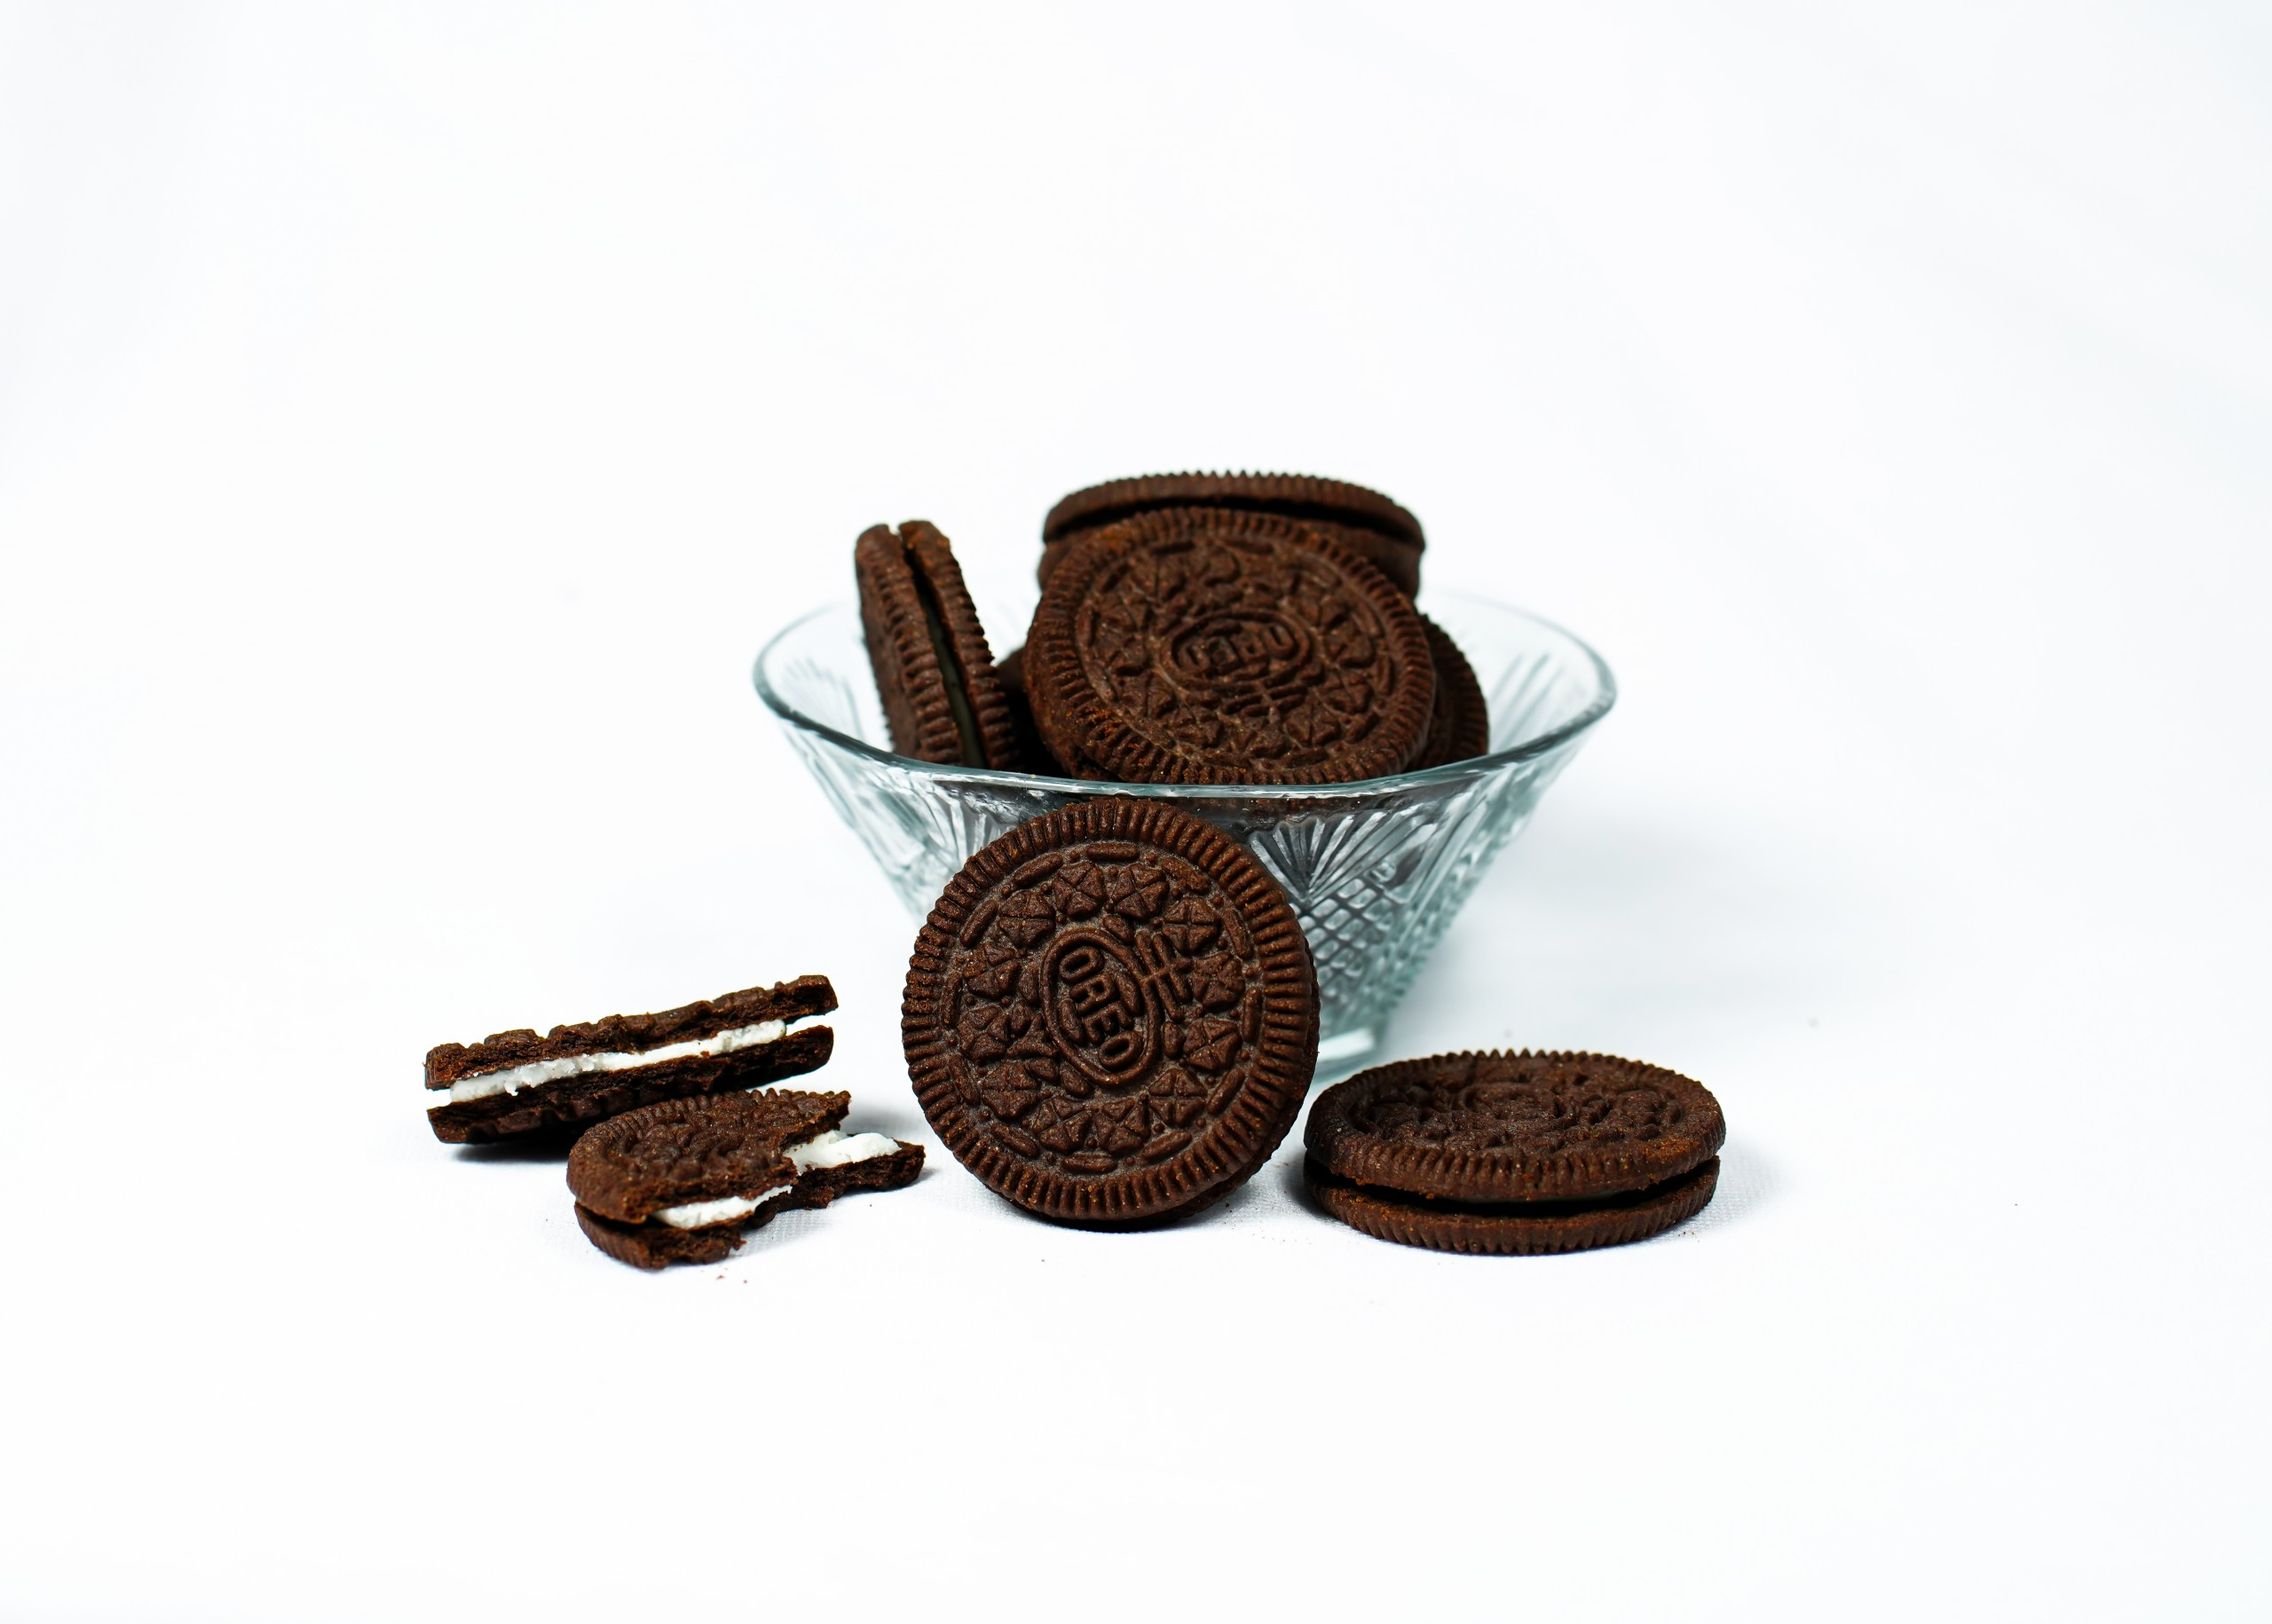 Bowl of Biscuits in White Background